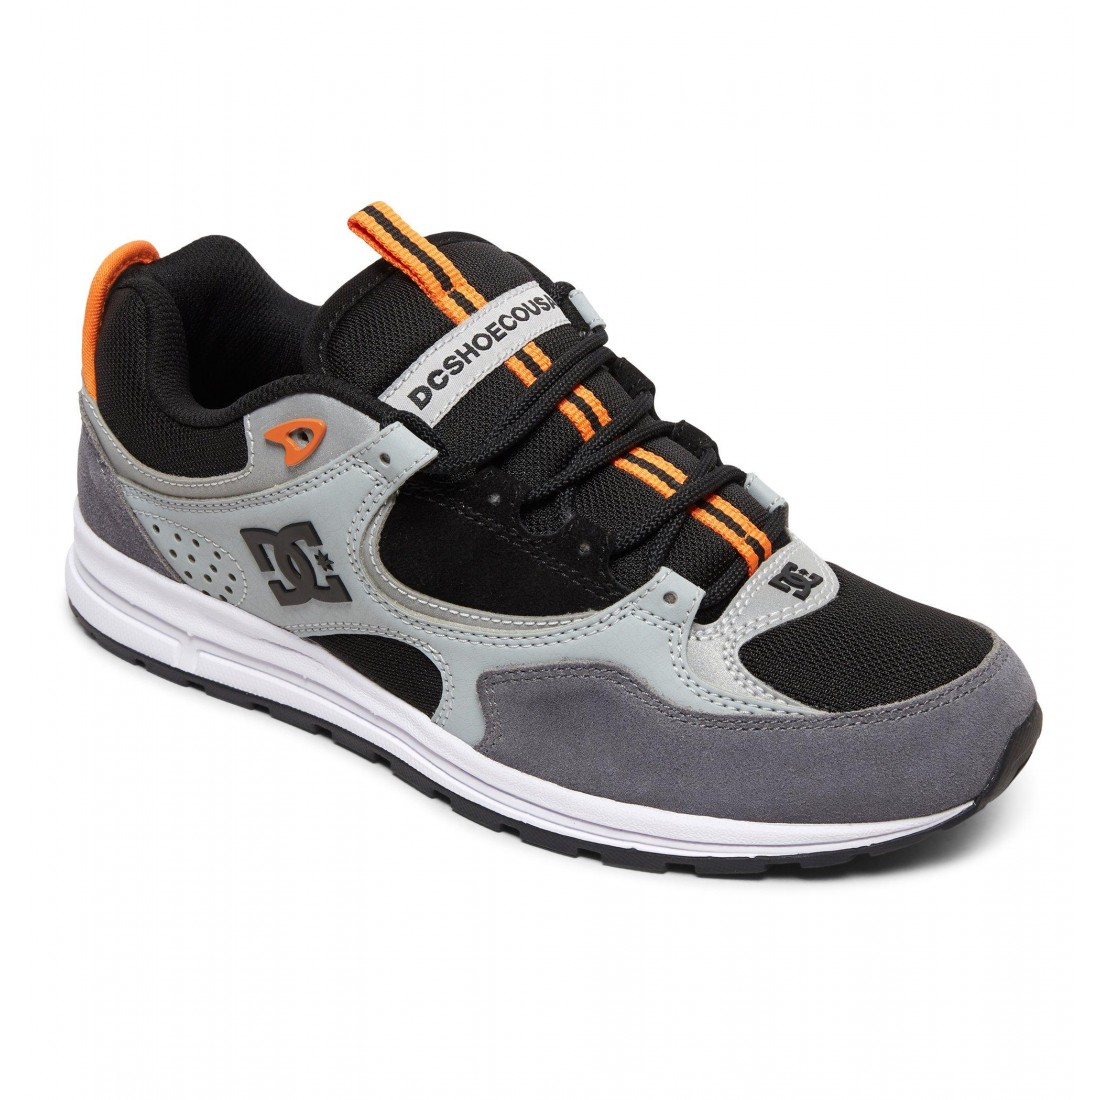 KALIS LITE SE black grey orange